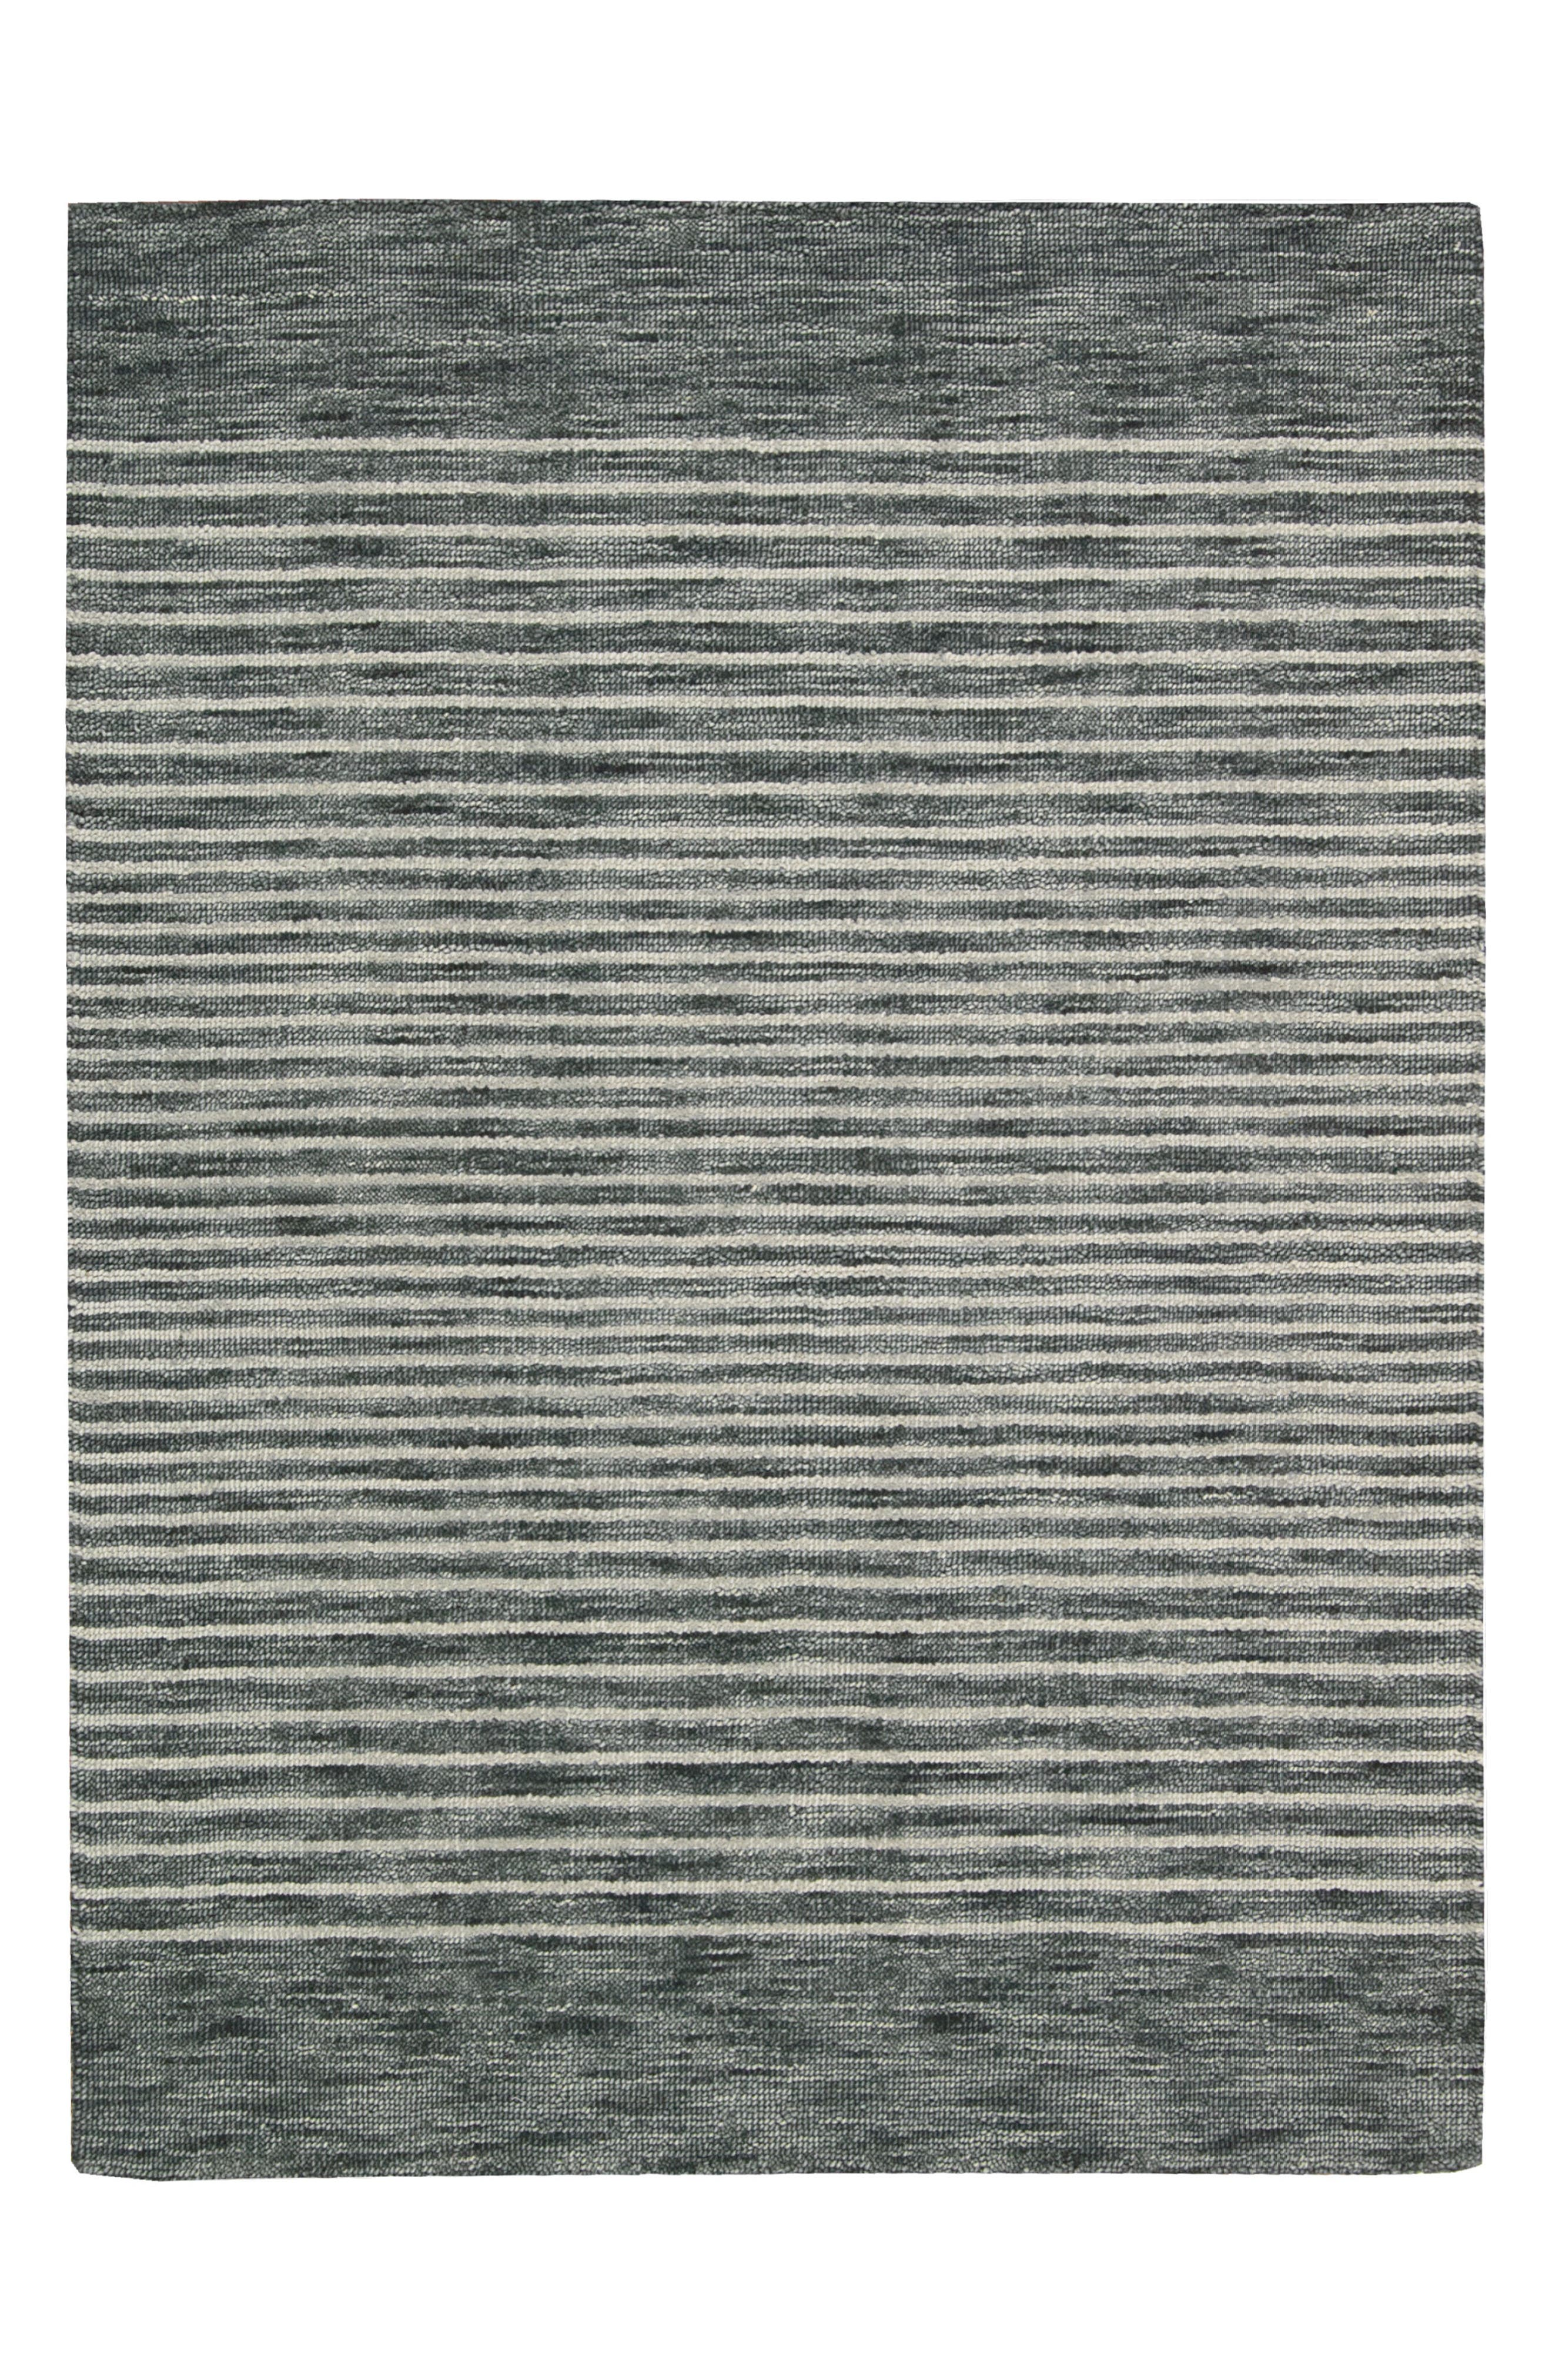 Tundra Handwoven Area Rug,                             Main thumbnail 1, color,                             030